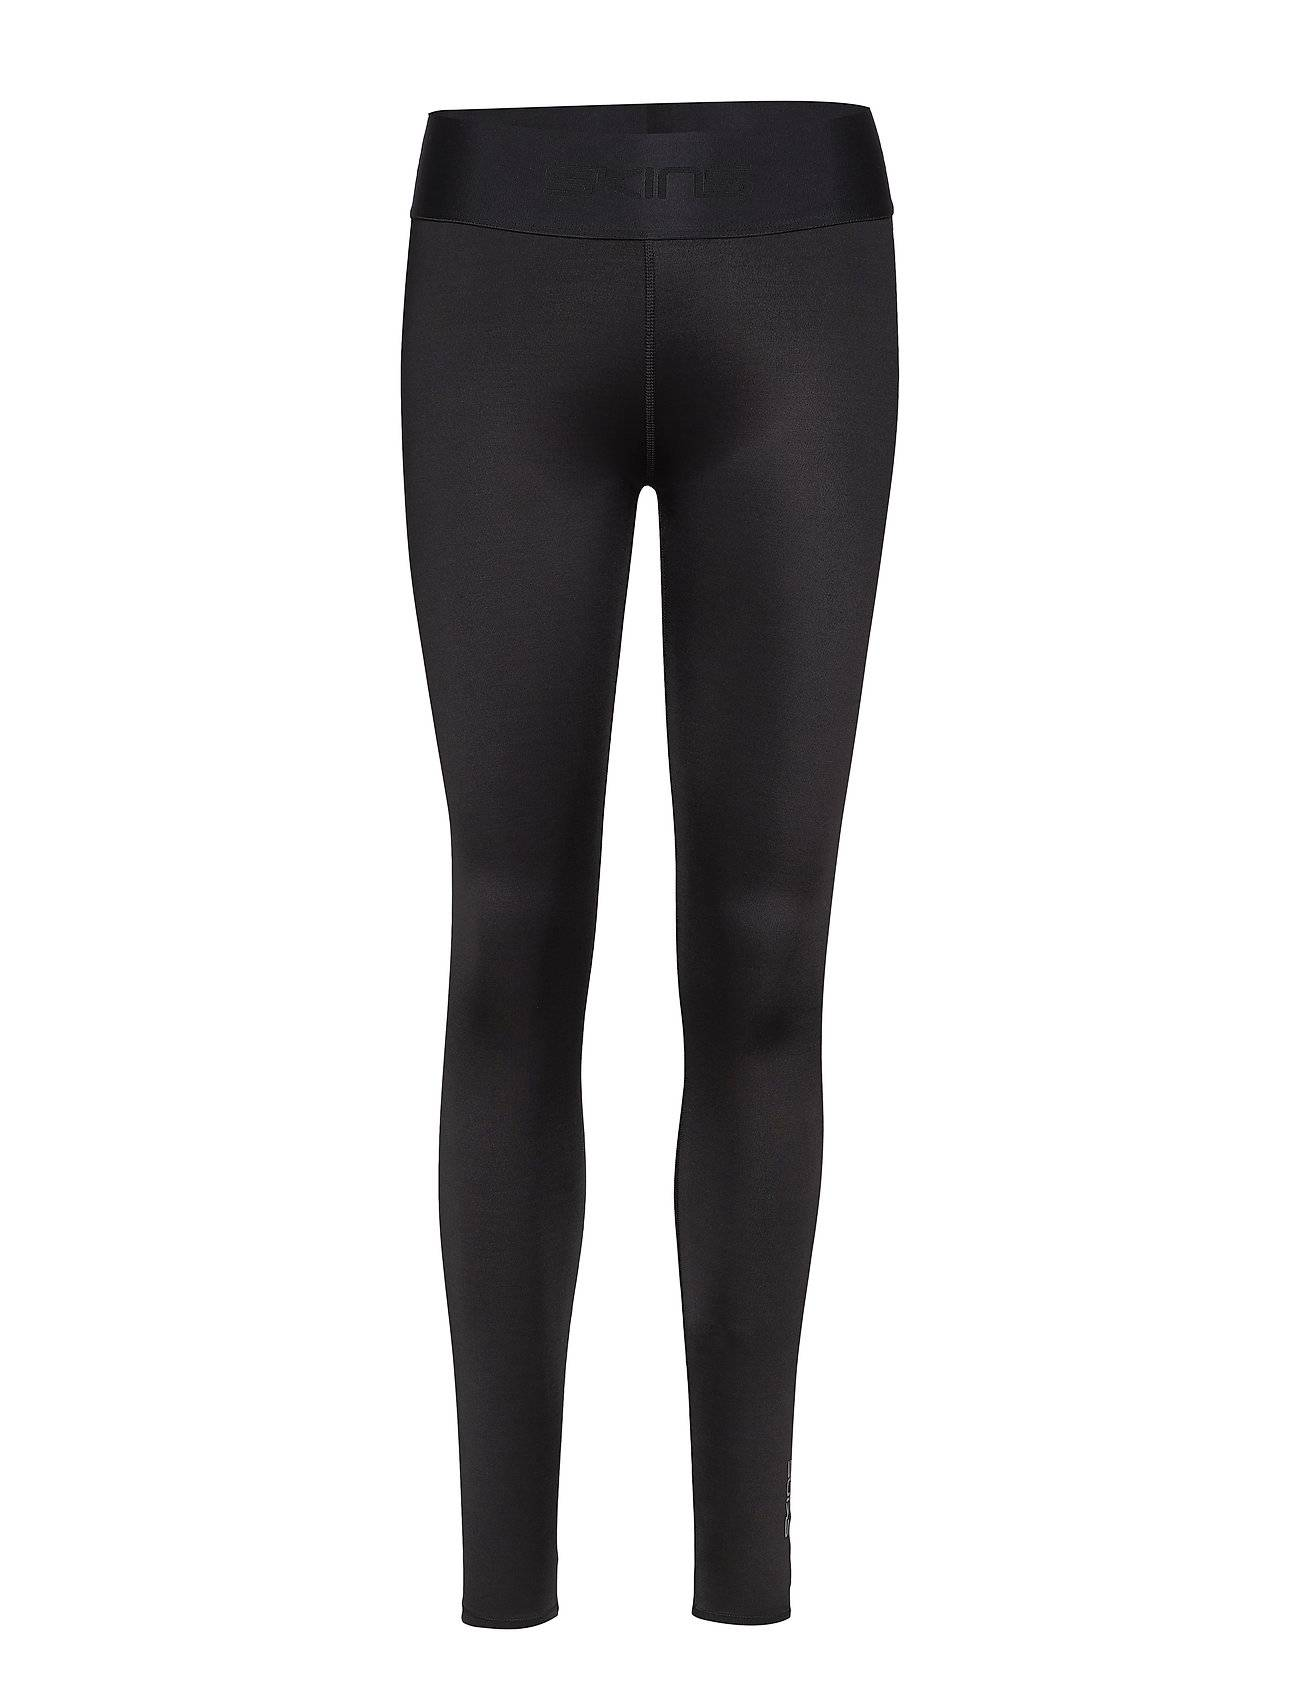 Image of Skins Dnamic Primary Womens Long Tights Running/training Tights Musta Skins